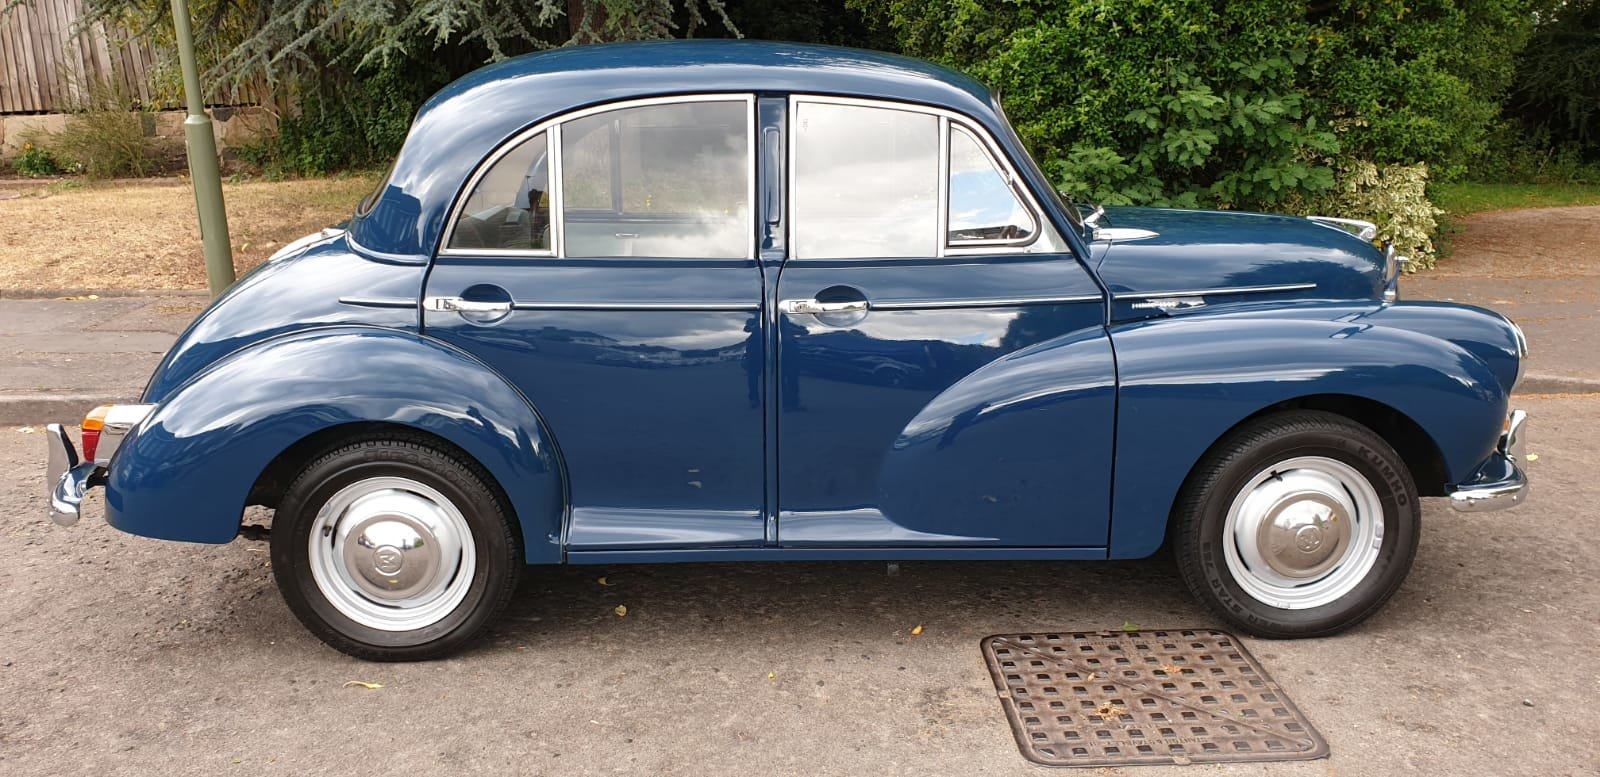 1967 Morris Minor 1000 For Sale (picture 6 of 6)